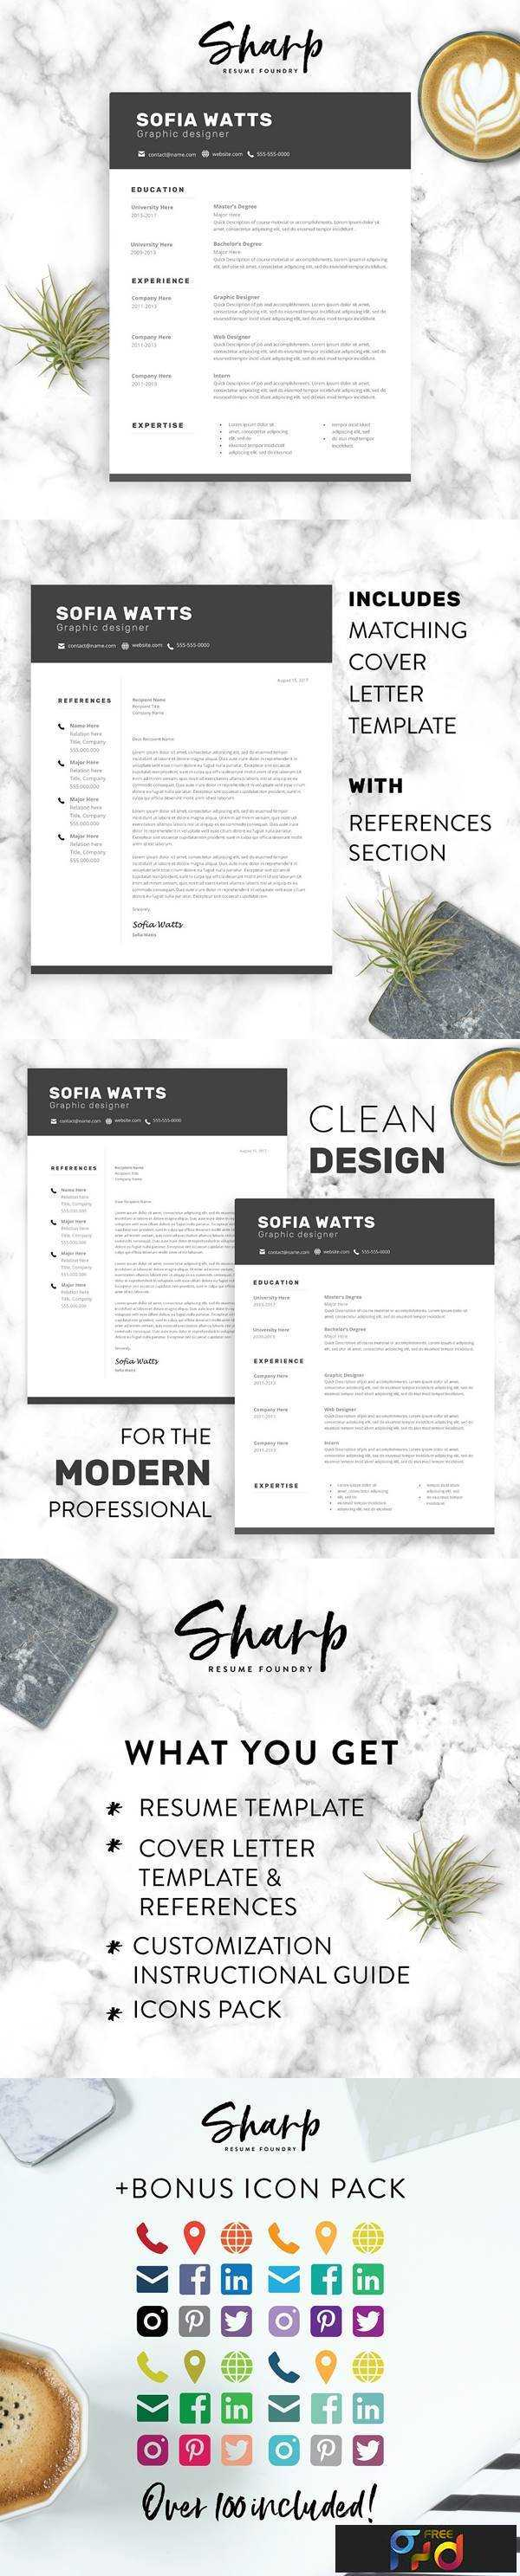 1806076 Modern Resume Template for Word 2160564 1